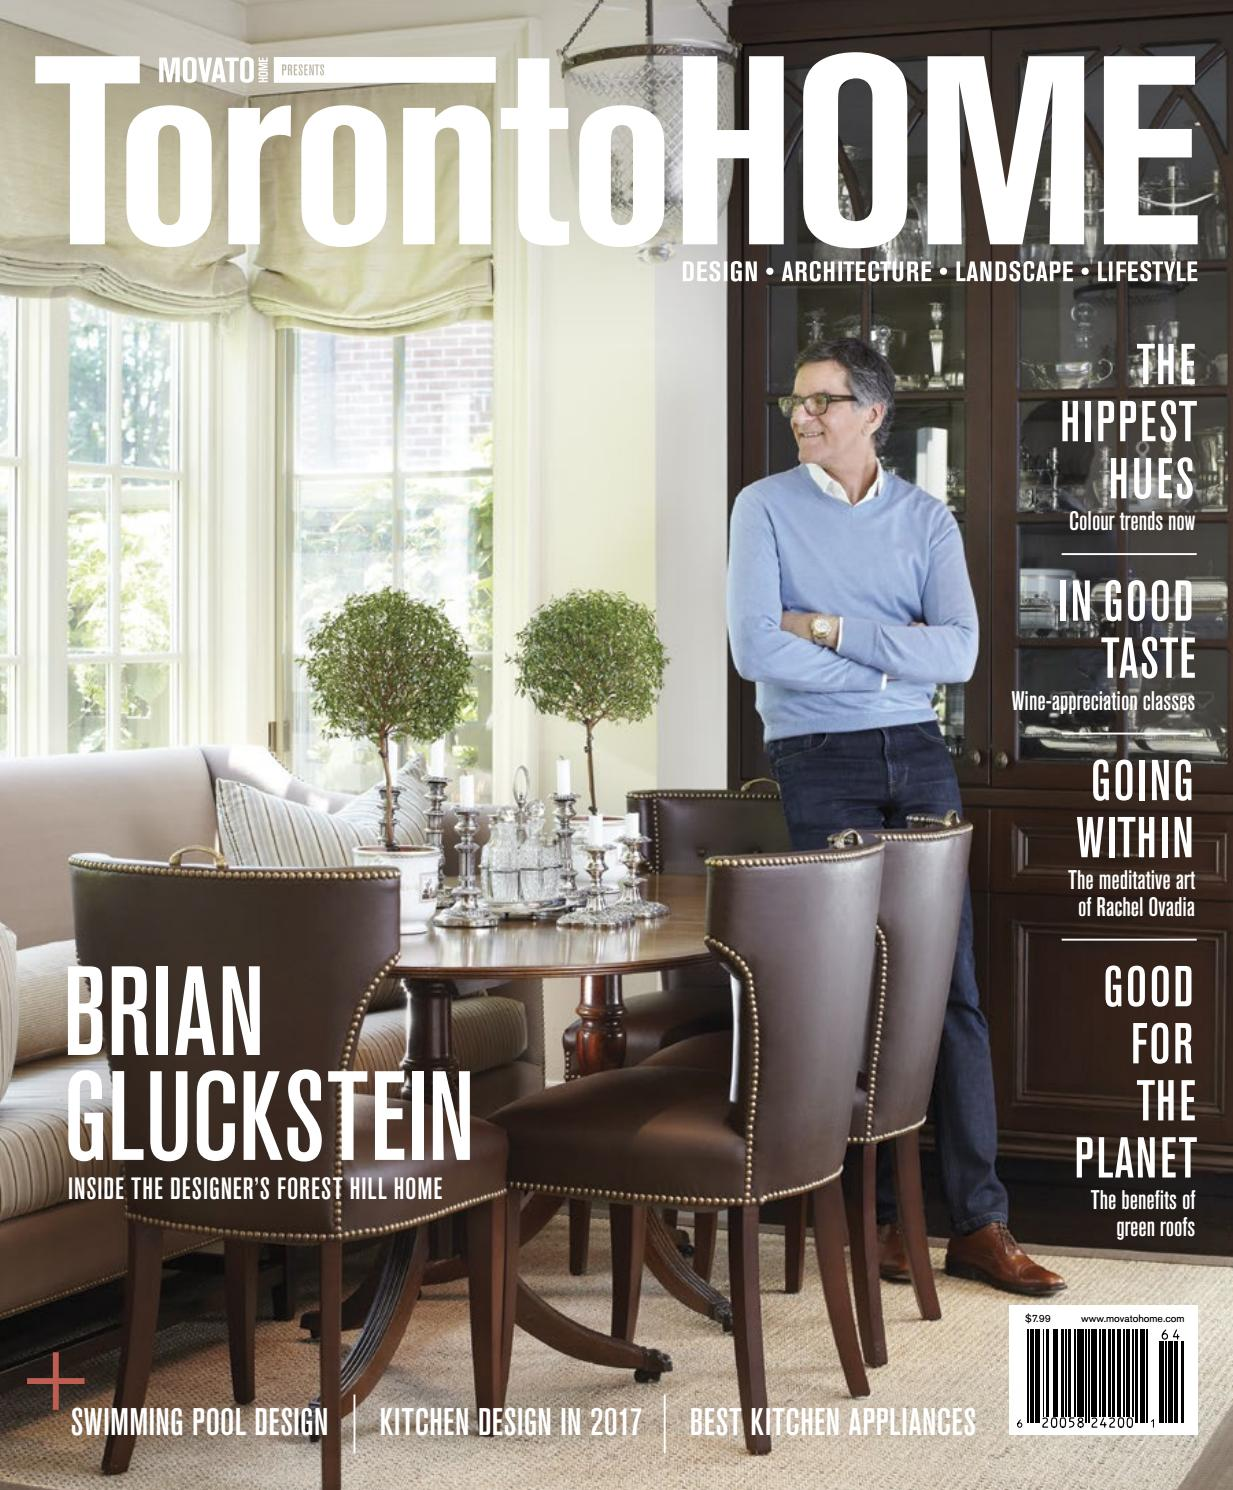 Toronto Home Trends 2016 by MovatoHome